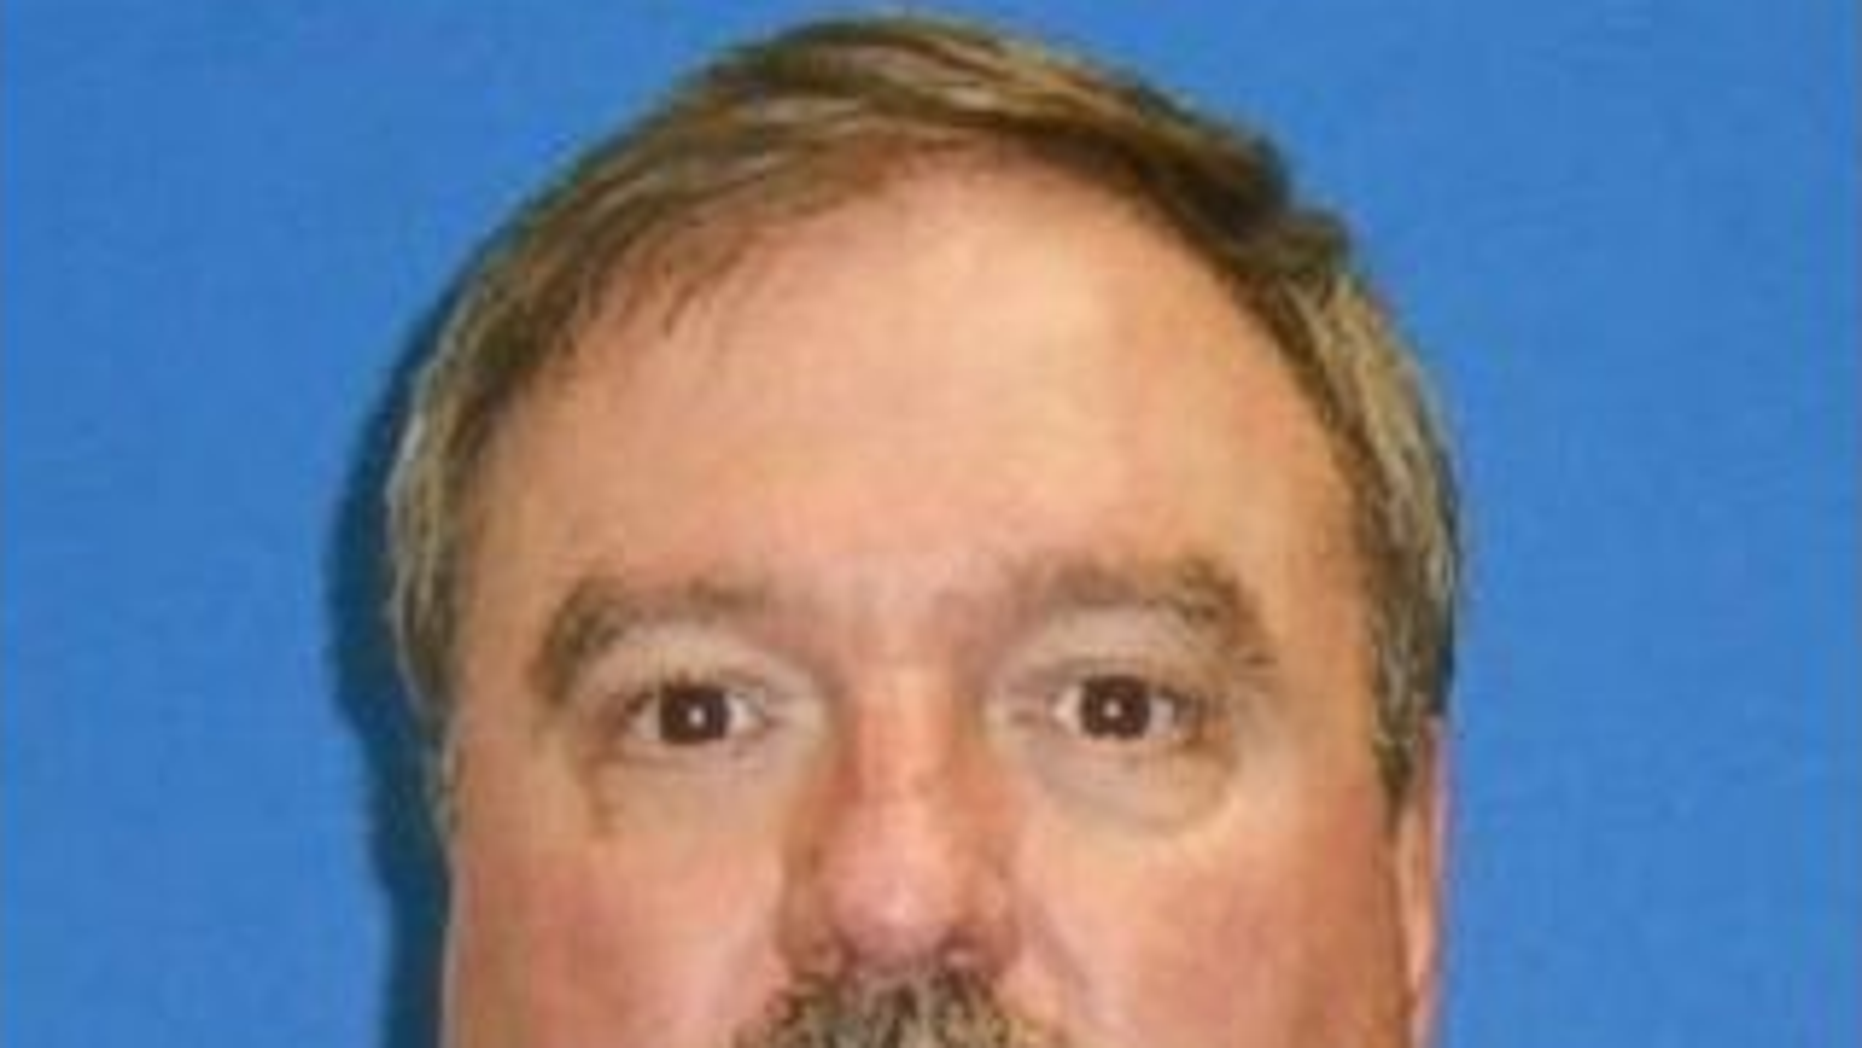 Clint Greenwood, Assistant Chief Deputy Constable and 30-year veteran was shot and killed on Monday.